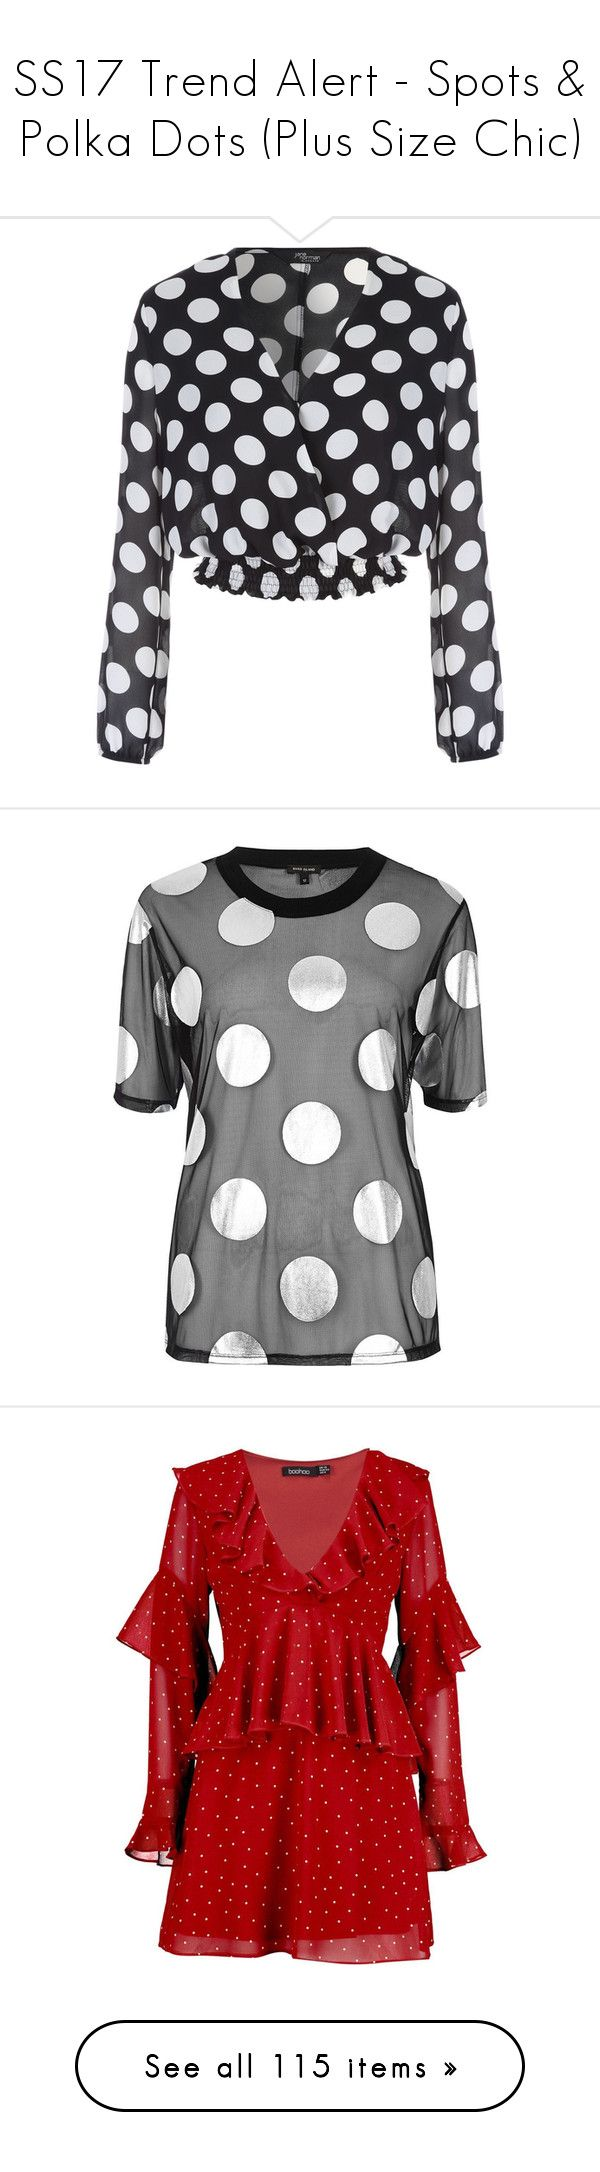 """""""SS17 Trend Alert - Spots & Polka Dots (Plus Size Chic)"""" by foolsuk ❤ liked on Polyvore featuring tops, blouses, t-shirts, sale, short sleeve t shirts, boxy tee, mesh tee, mesh top, short sleeve tee and dresses"""